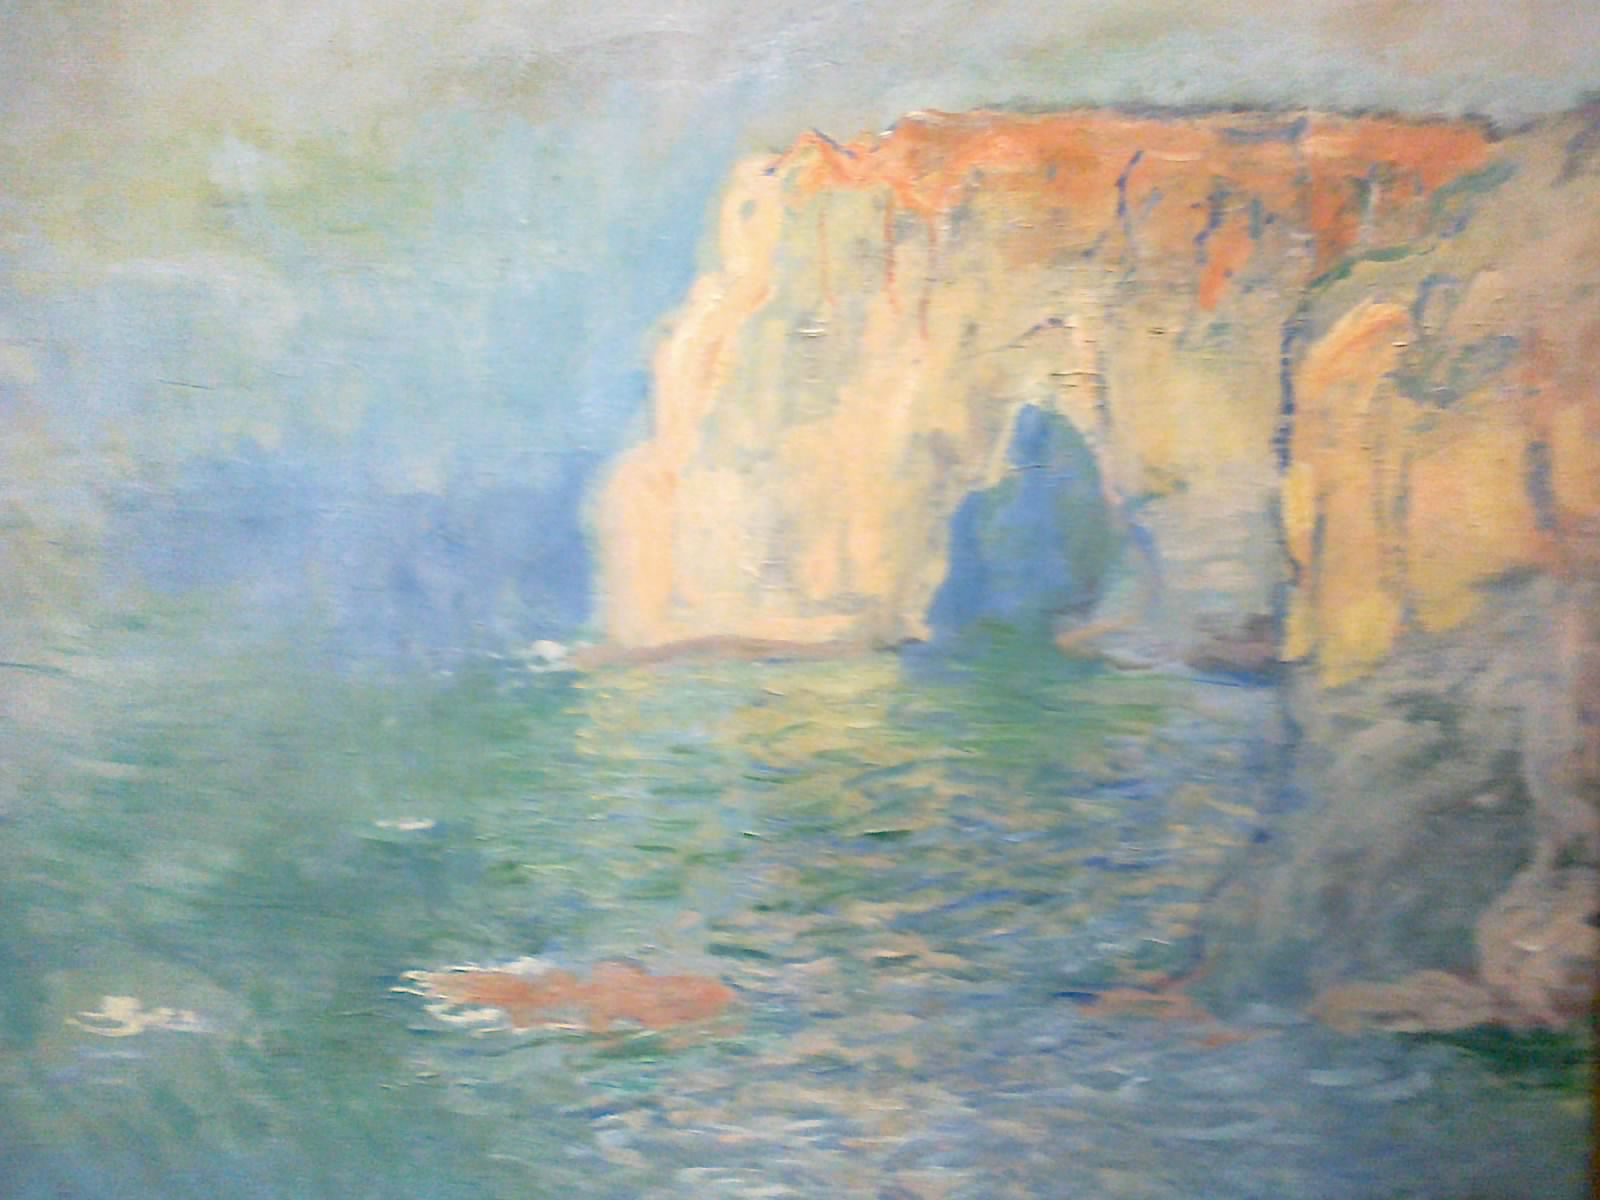 file claude monet tretat la manneporte reflets sur l 39 eau wikimedia commons. Black Bedroom Furniture Sets. Home Design Ideas